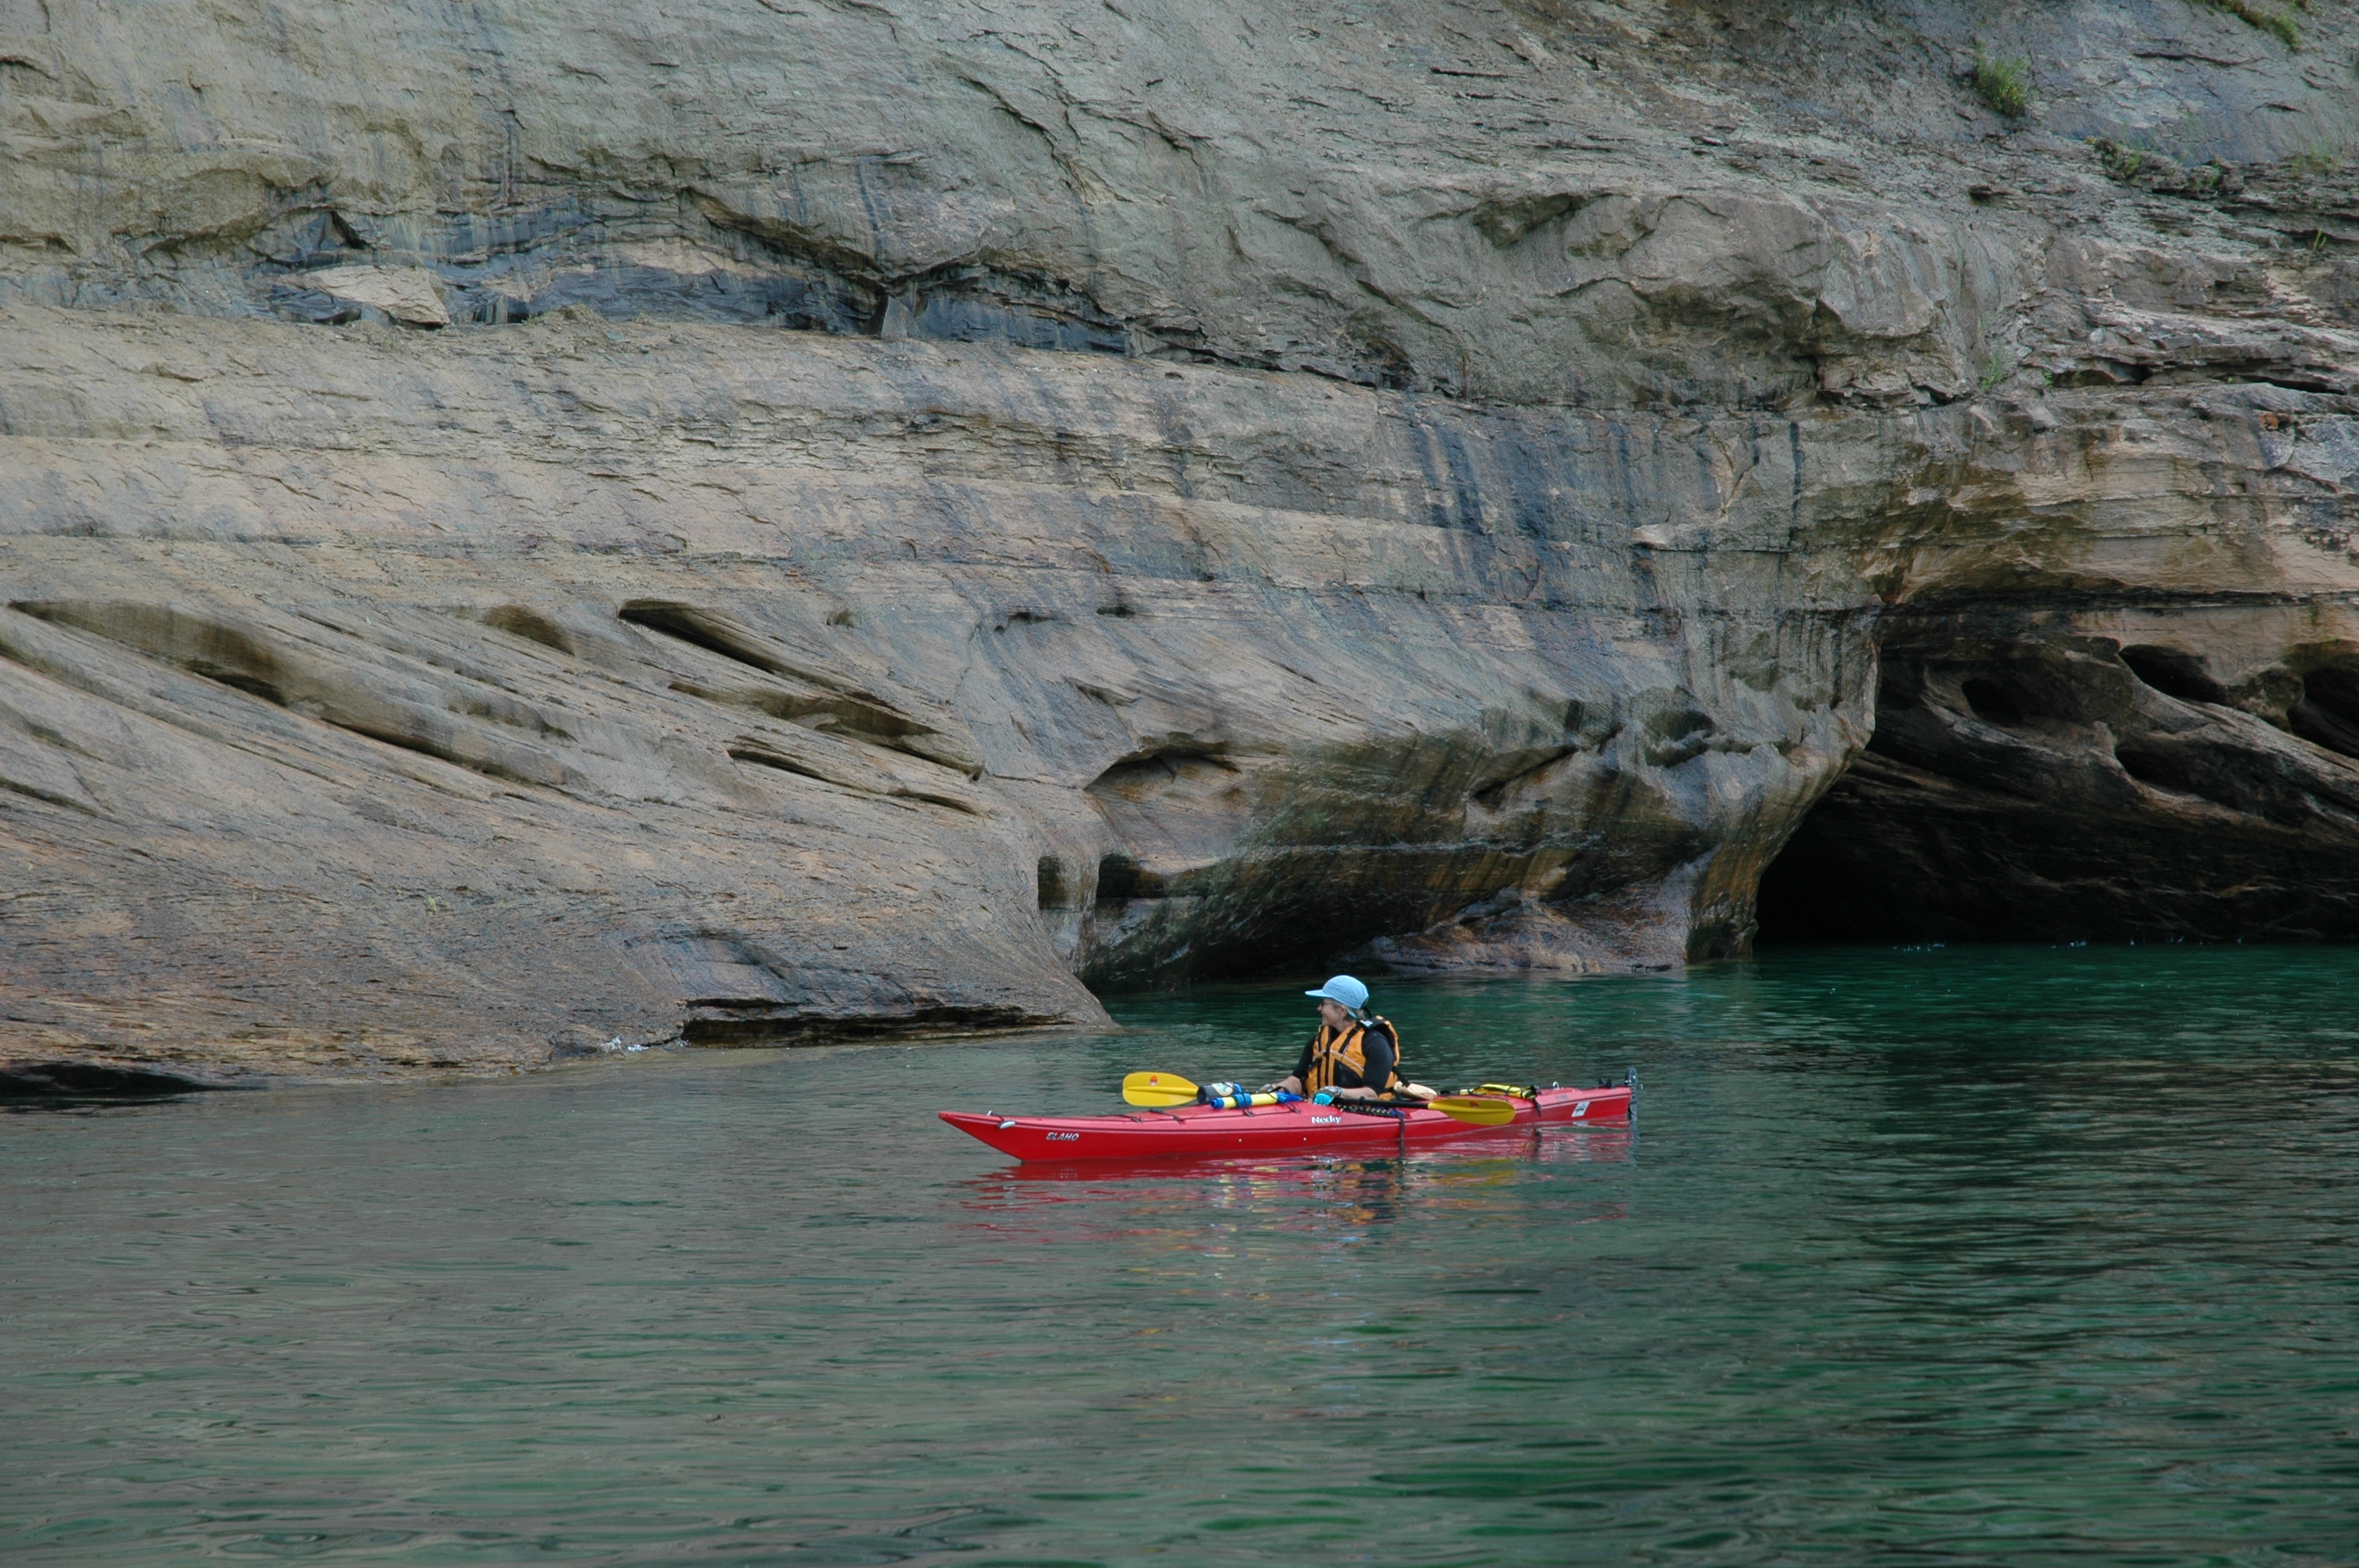 Kayaker on Lake Superior along the Pictured Rocks cliffs.